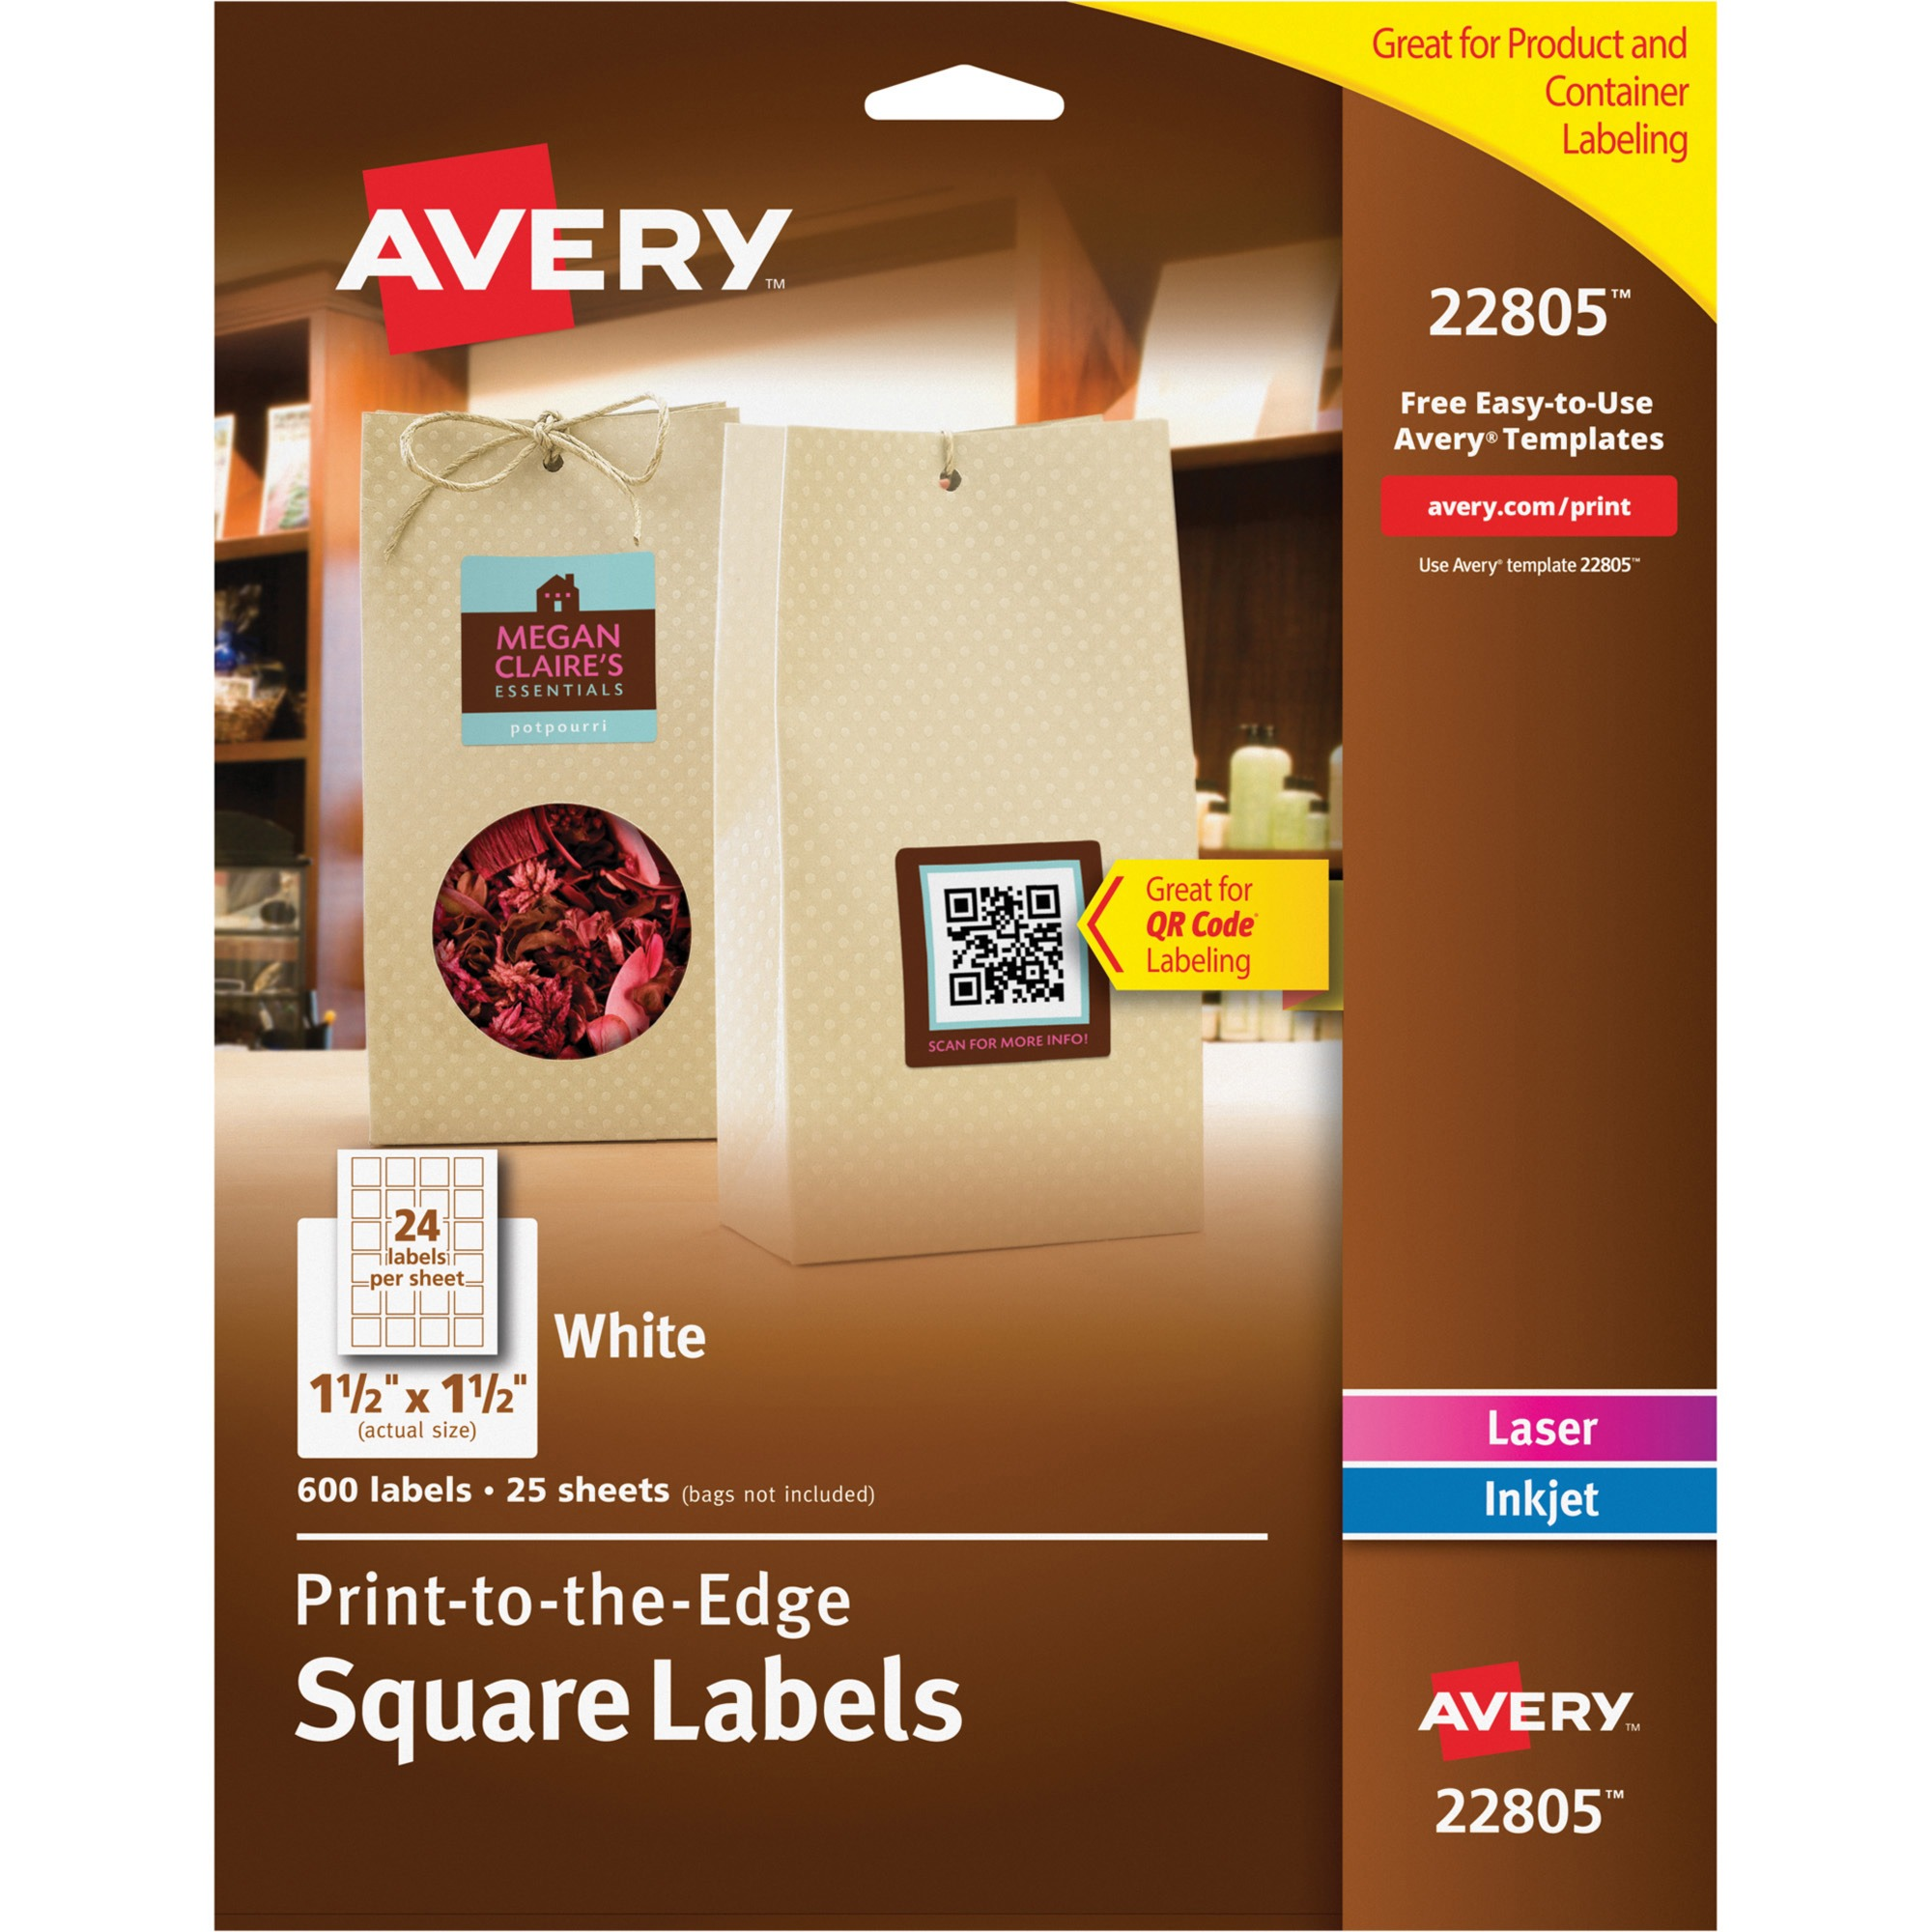 "Avery(R) Easy Peel(R) Print-to-the-Edge White Square Labels 22805, 1-1/2"" x 1-1/2"", Pack of 600"